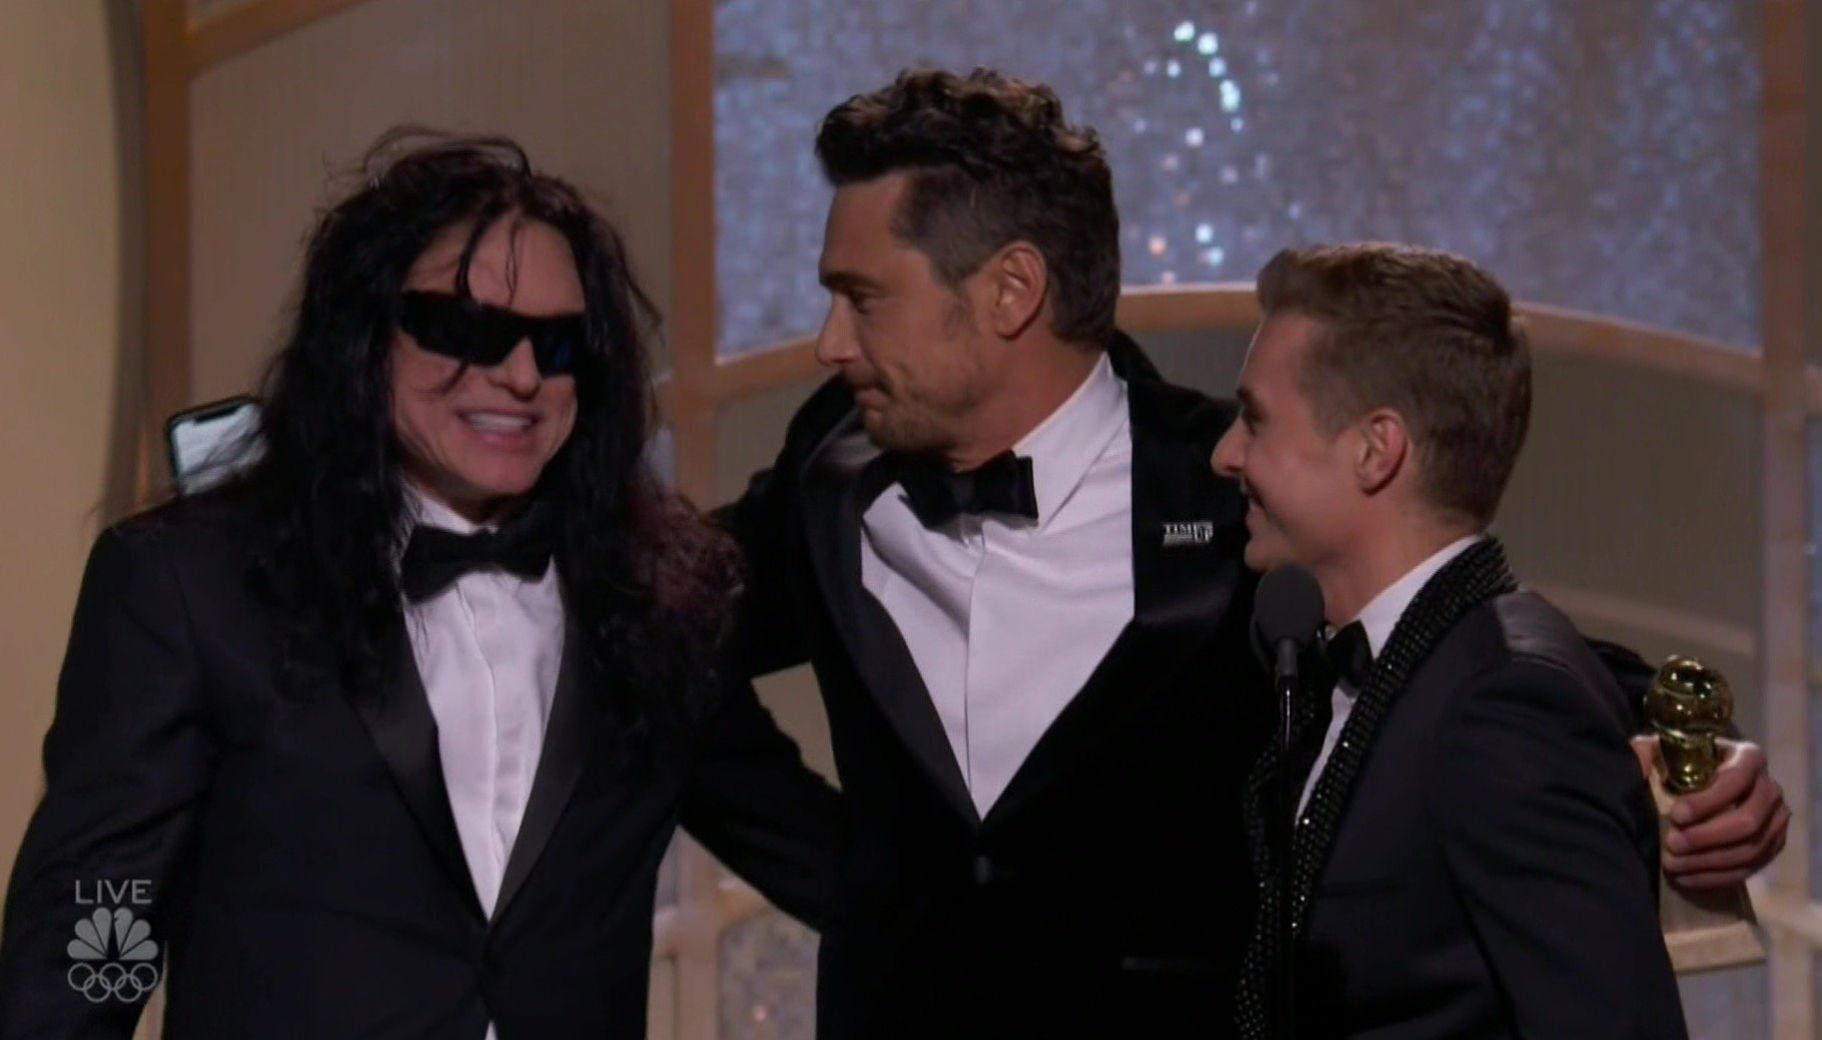 James Franco's Golden Globes Win Divides Fans, As Tommy Wiseau Joins Him On Stage